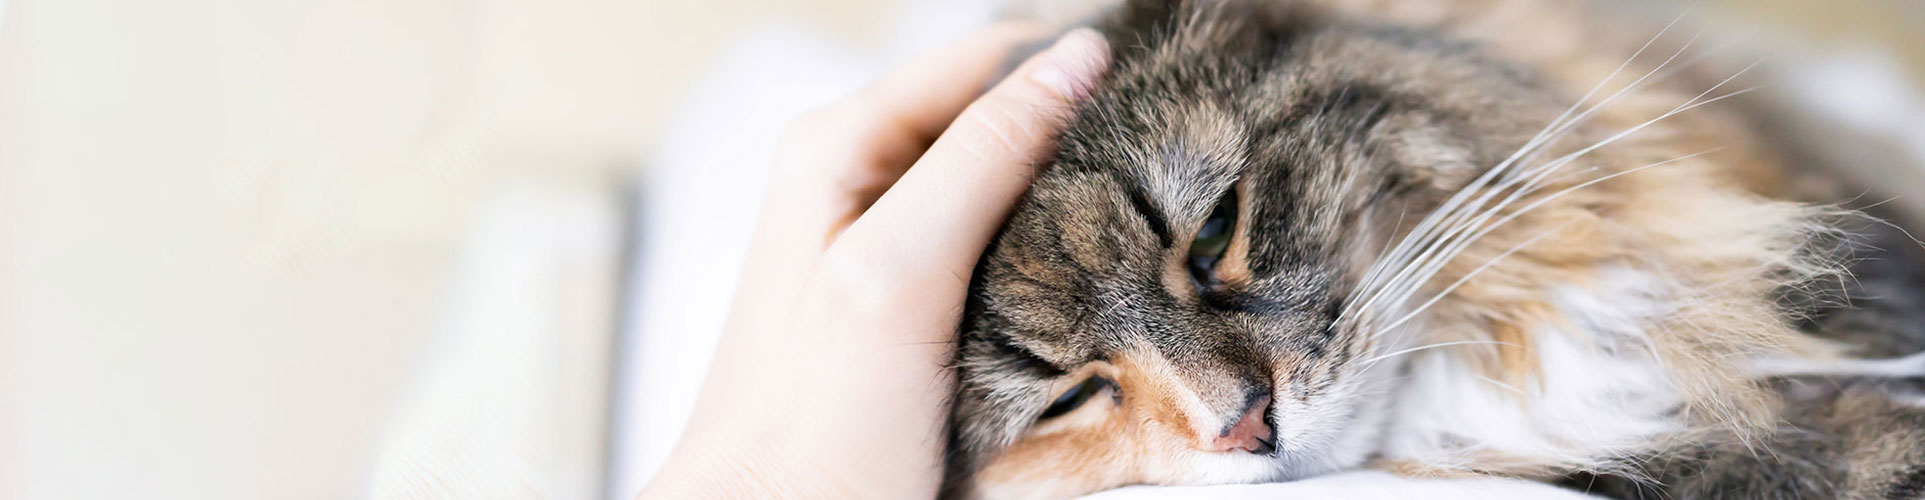 Pet Emergency Care in Lewisville: Owner Petting Cat